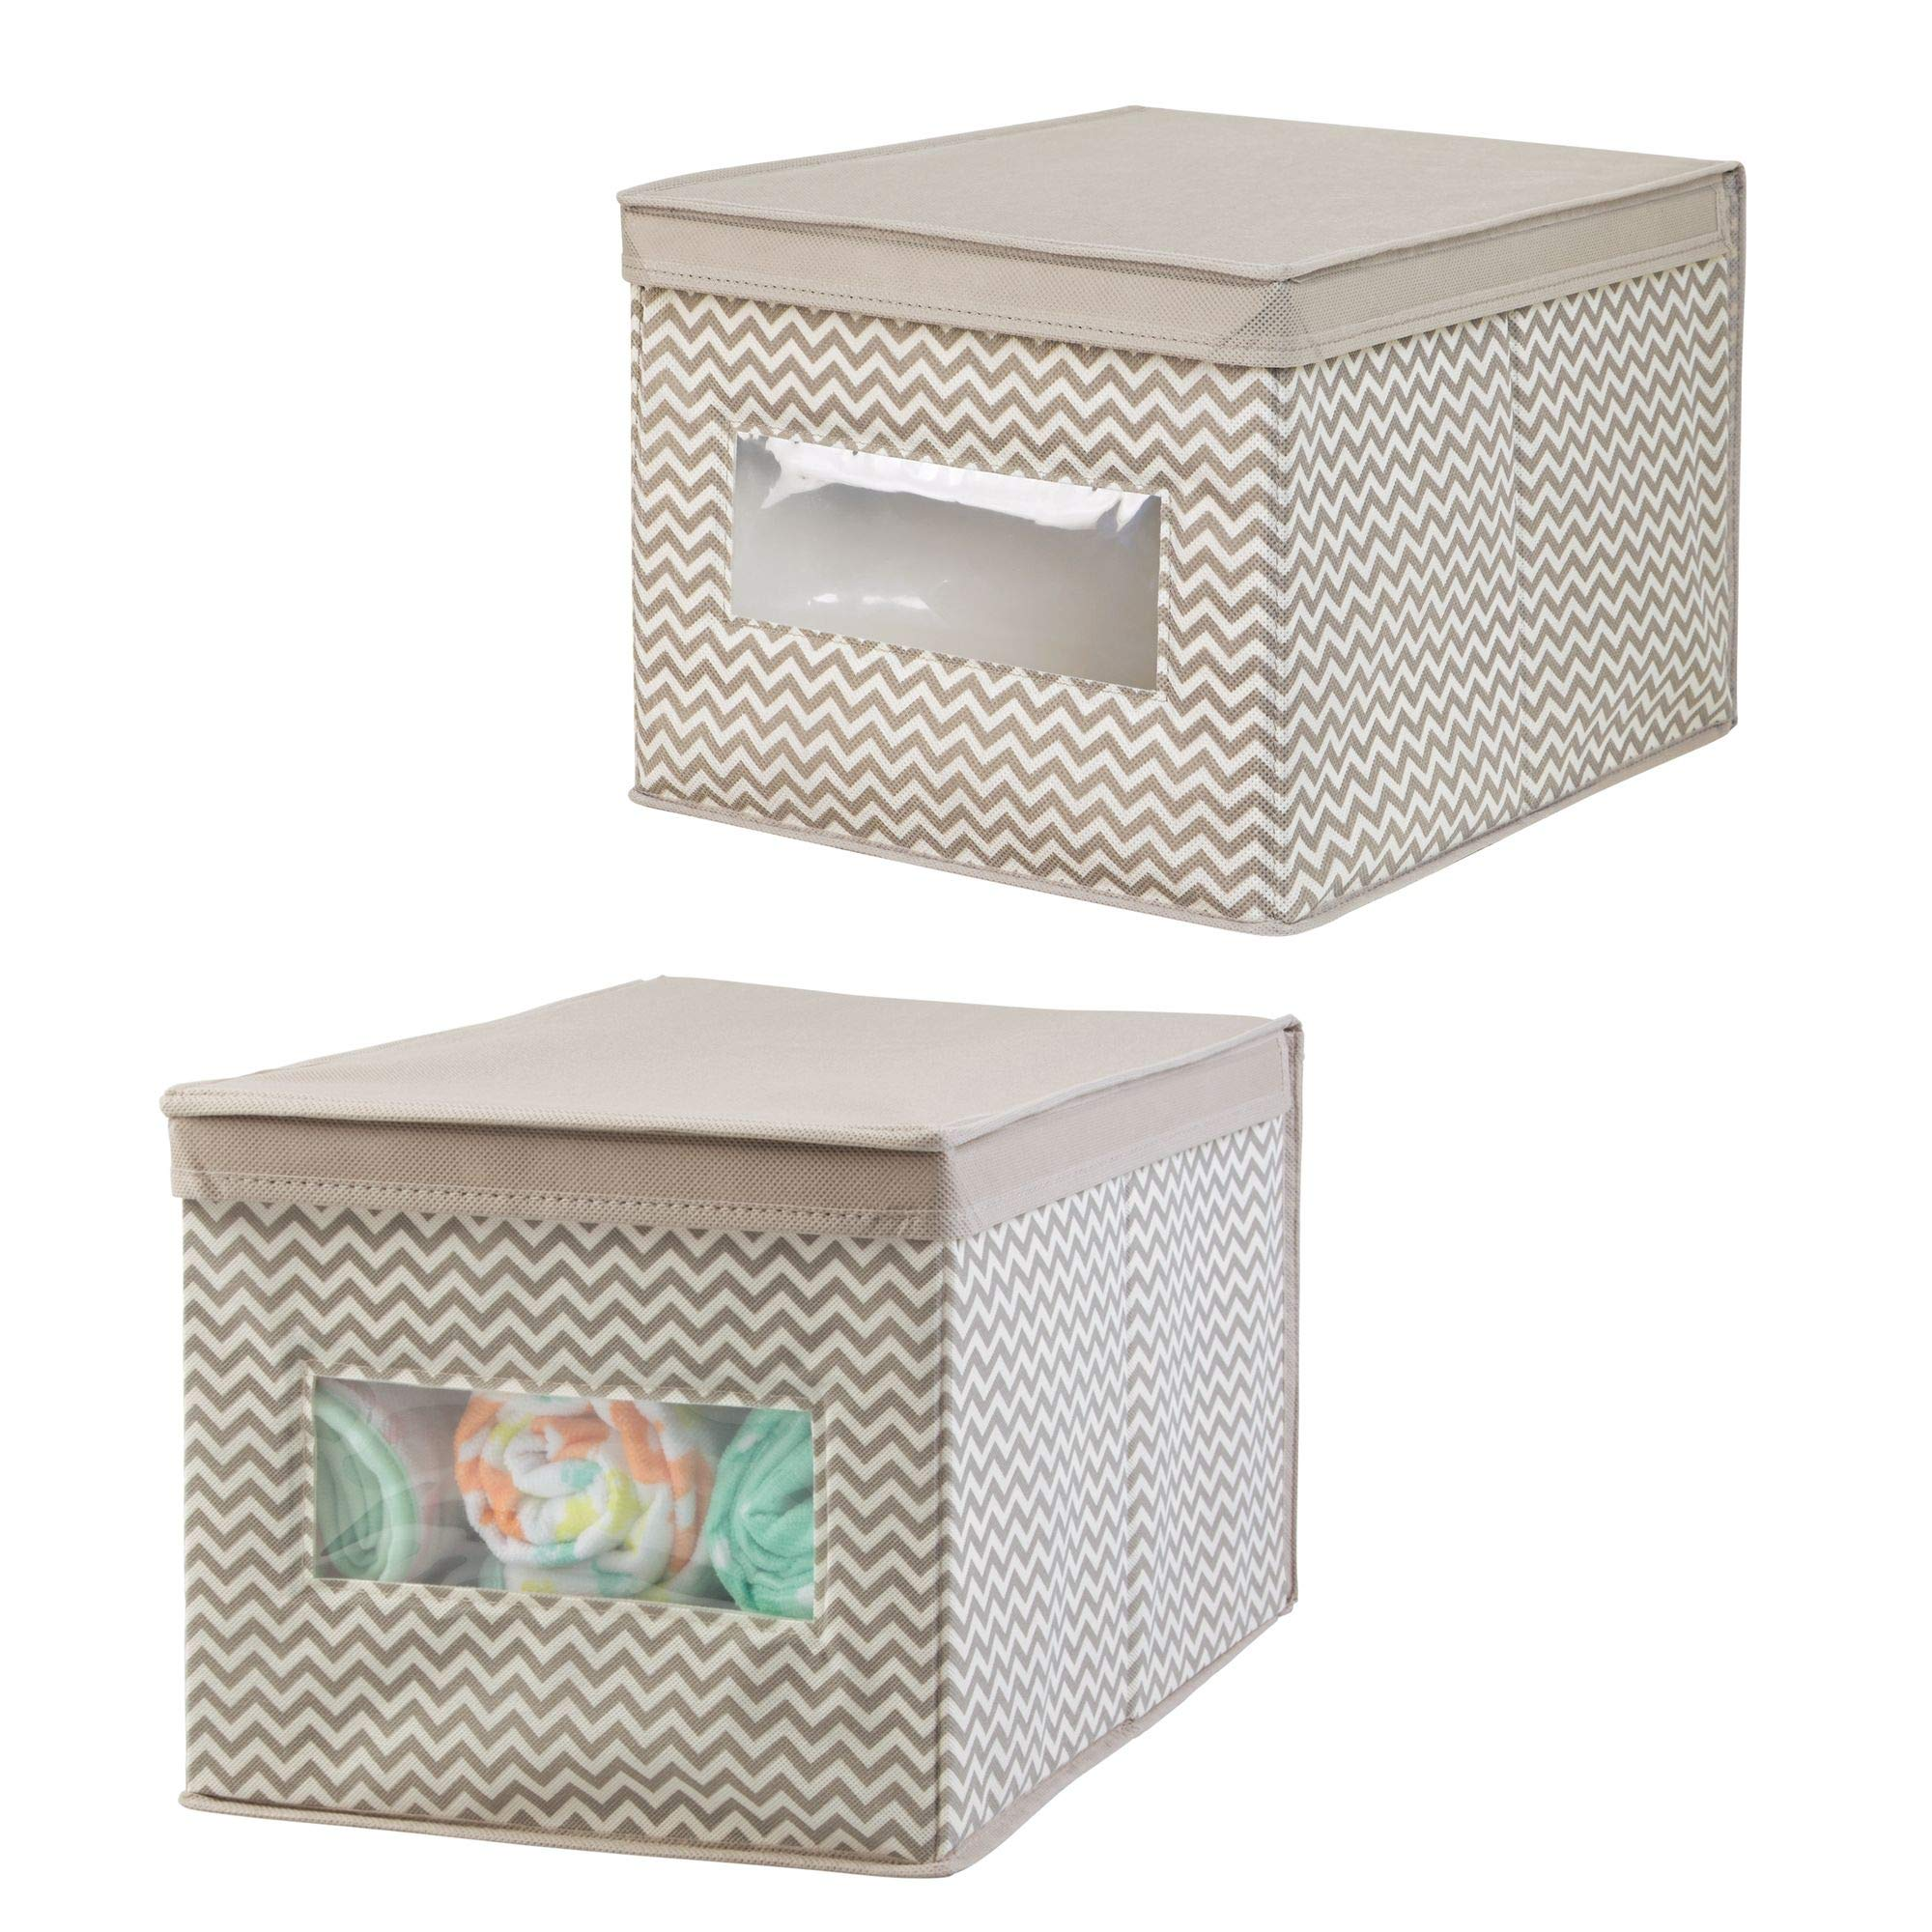 mDesign Soft Stackable Fabric Closet Chevron Storage Organizer Holder Box - Clear Window, Attached Hinged Lid, for Child/Baby Room, Nursery - Pack of 2, Large, Zig Zag Pattern in Taupe/Natural